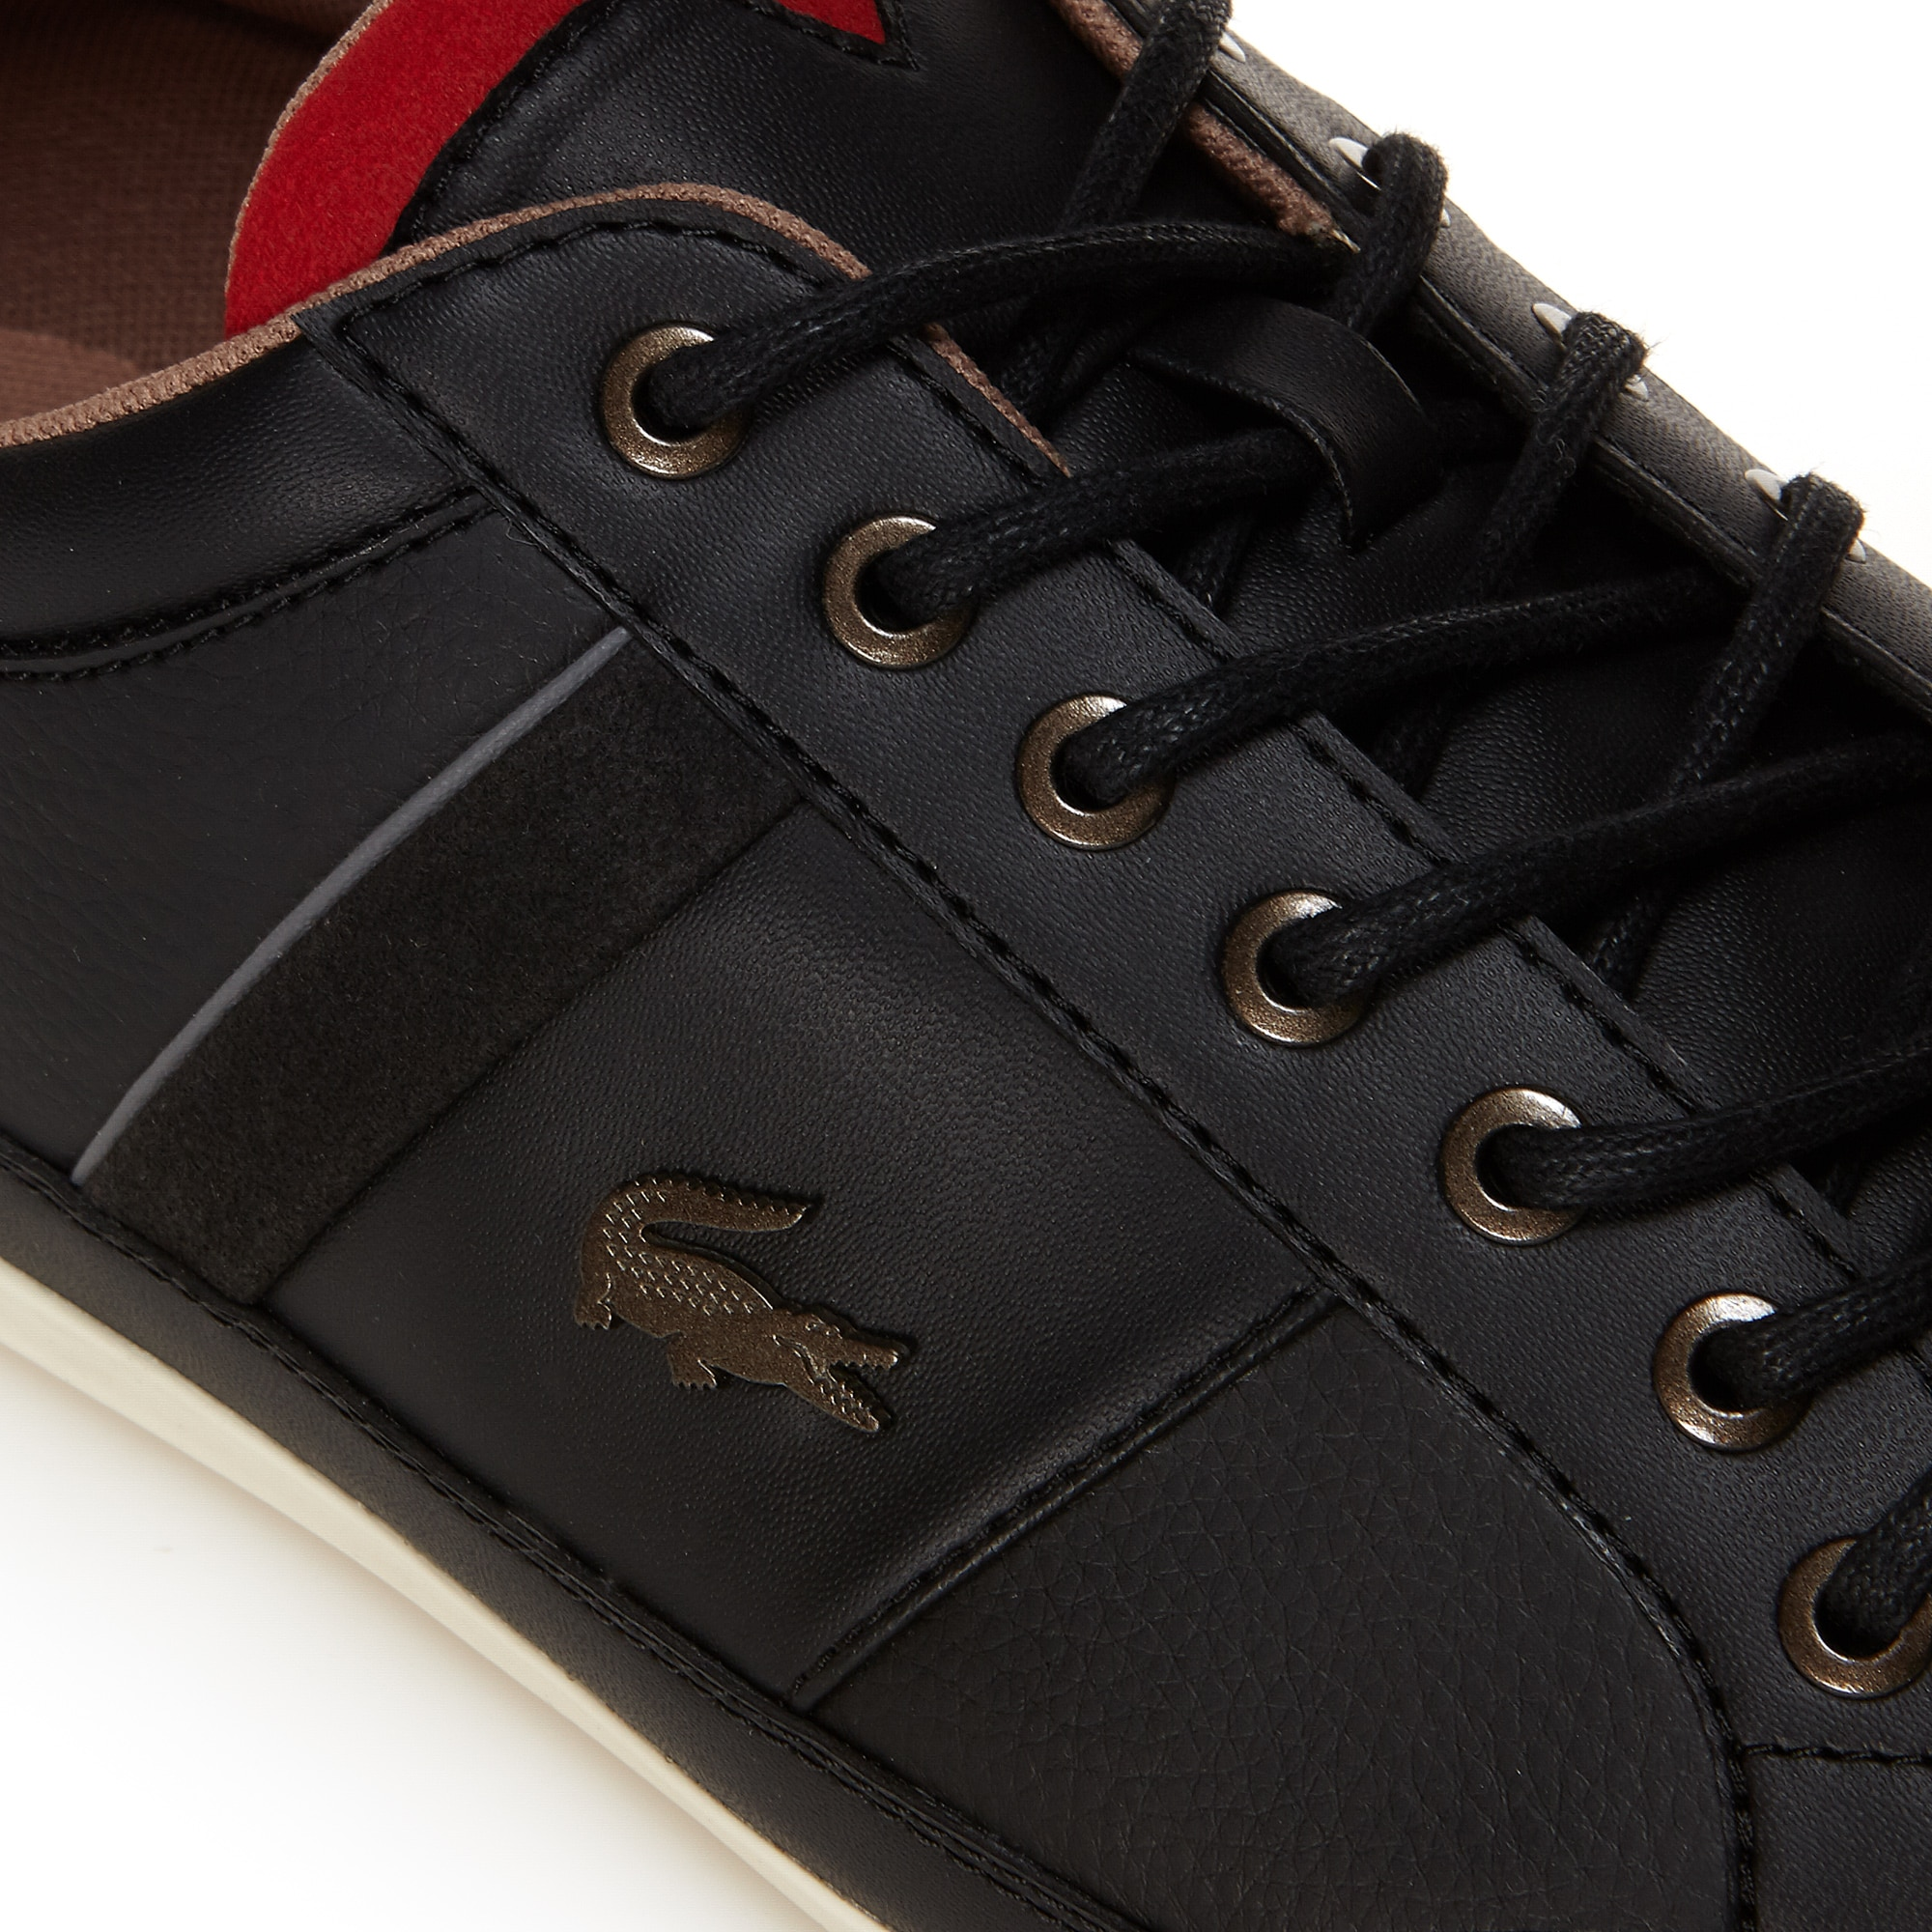 6eedbc7c42dc3 Lacoste Men s Chaymon Nappa Leather Trainers at £105